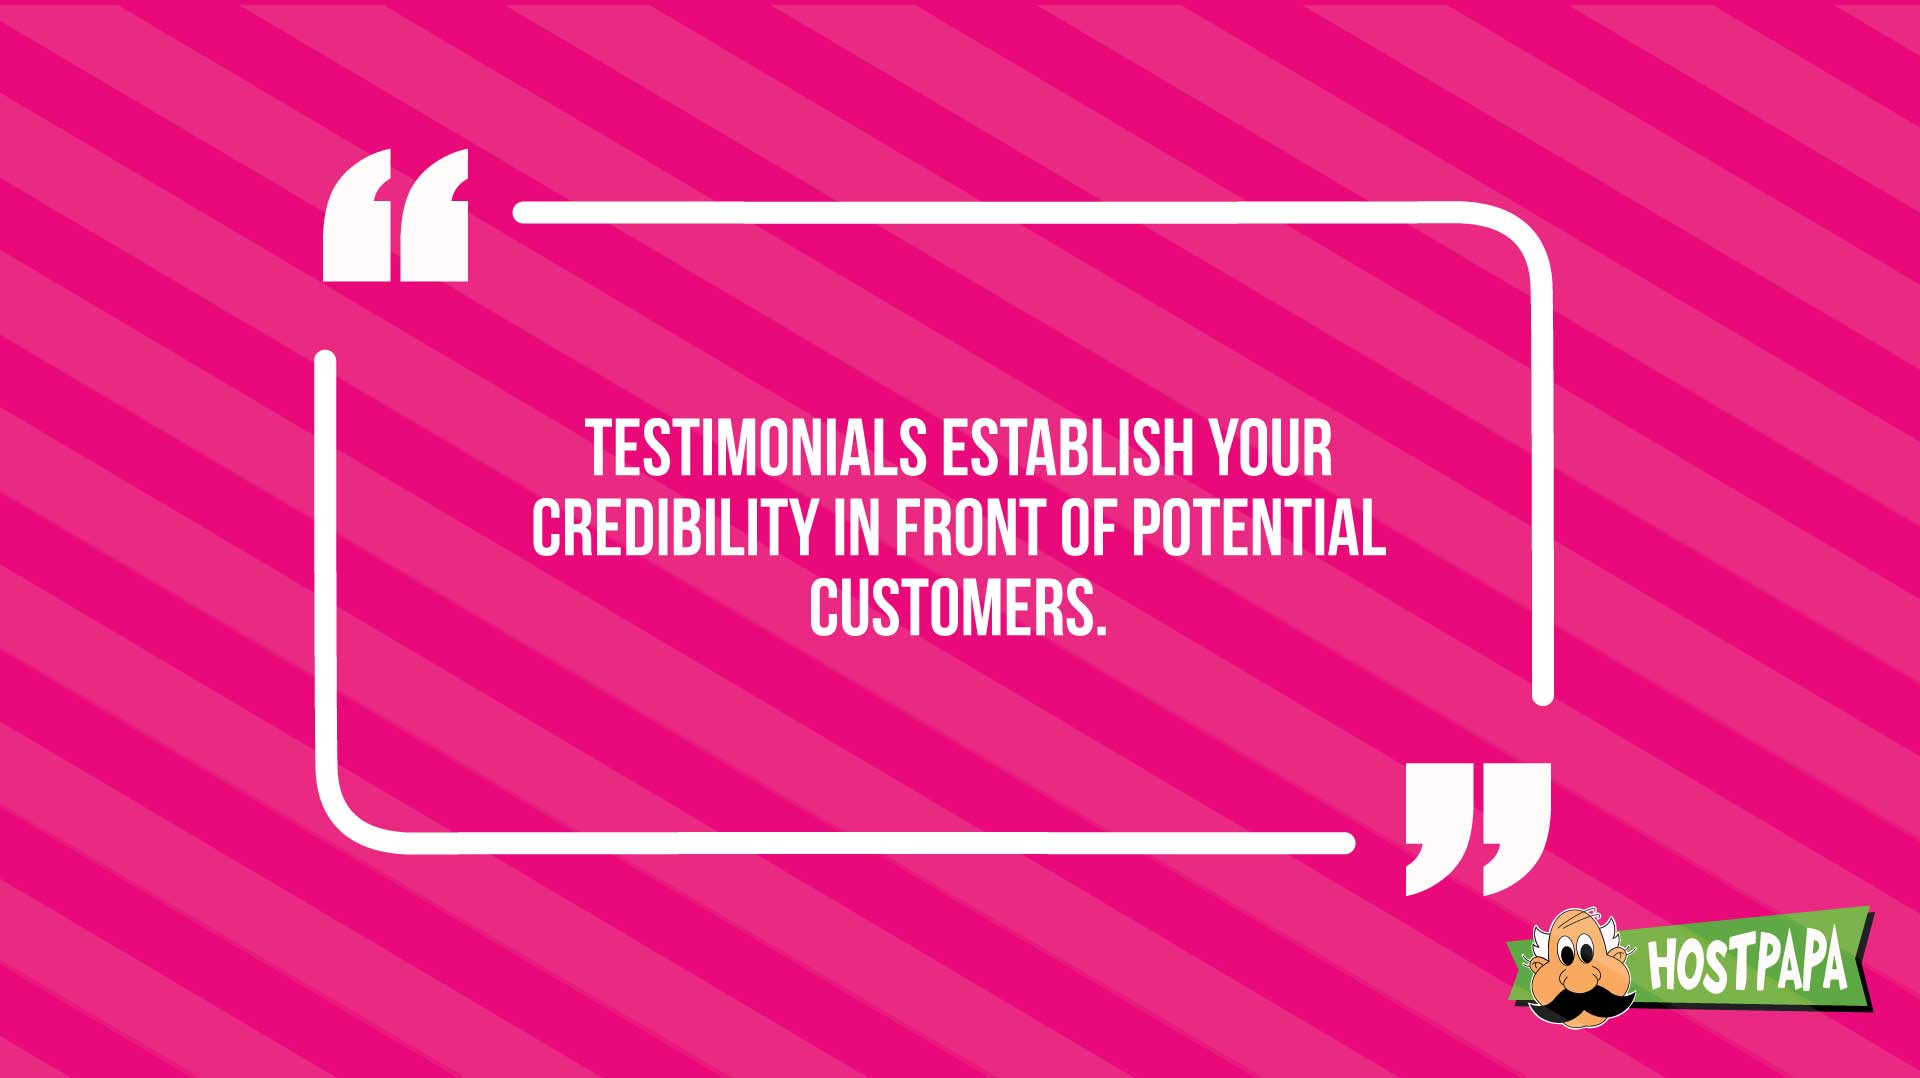 Get more customers through credibility